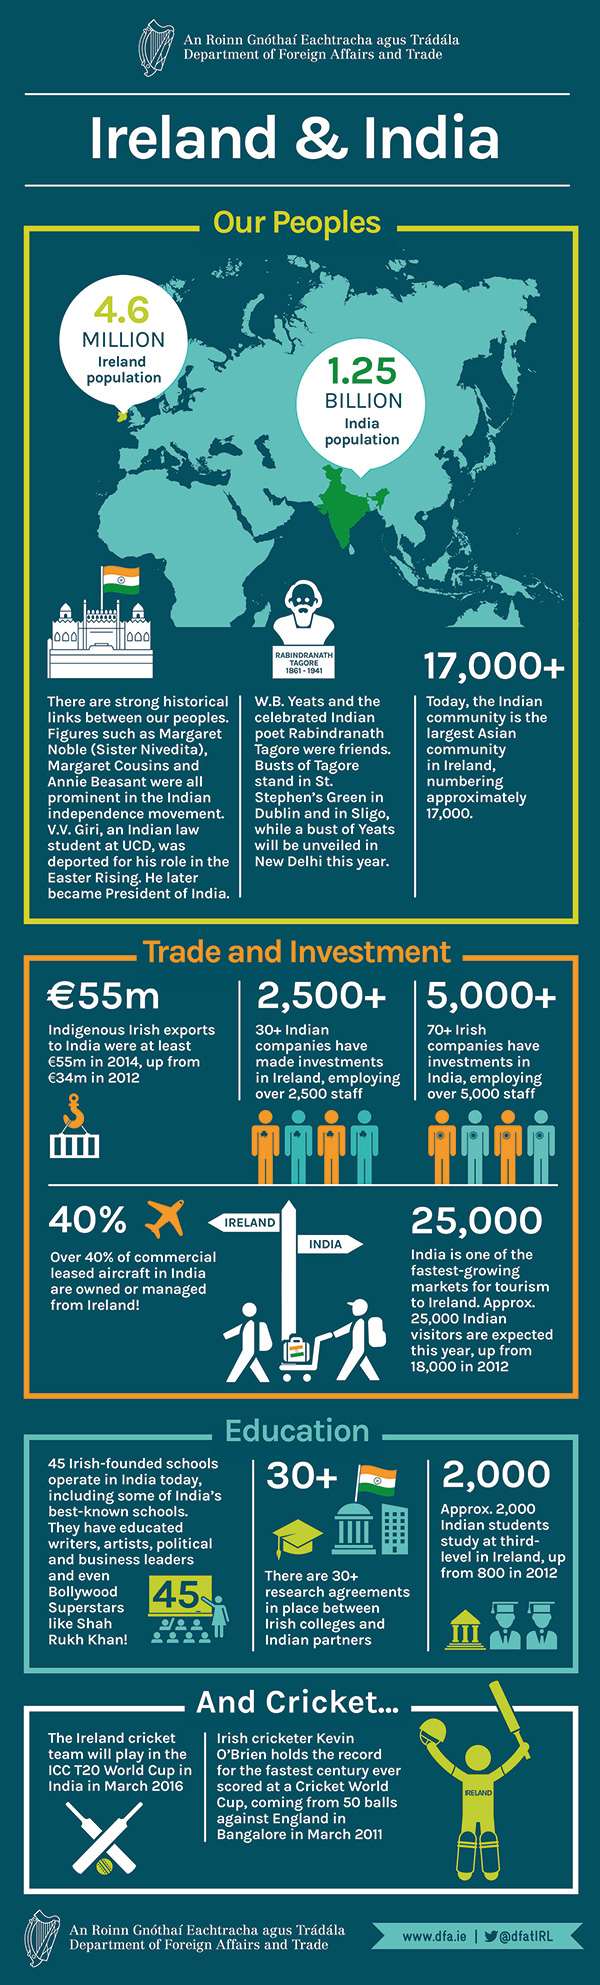 Ireland and India Infographic